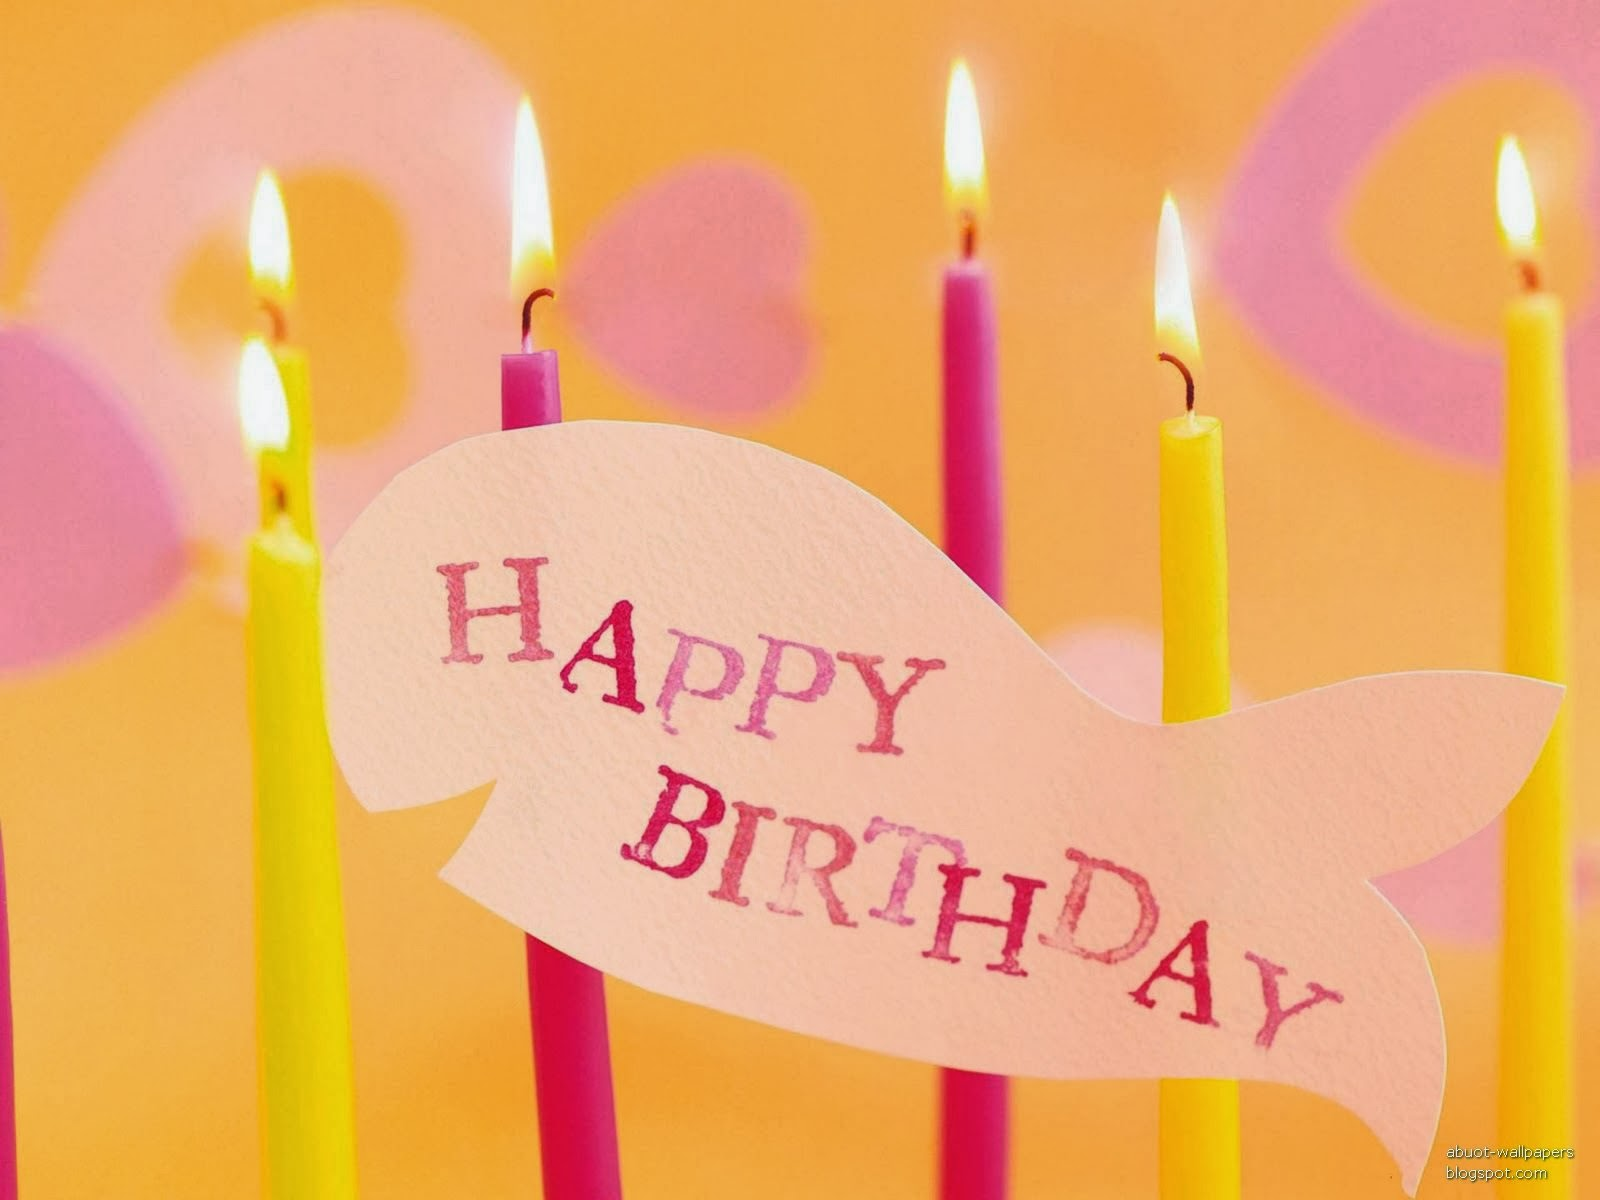 Happy birthday candles amazing pink and yellow color combination birthday wishes sms cards greetings quotes messages for you to wish you love fiance fiancee relation brother sister son daughter mother and kristyandbryce Gallery